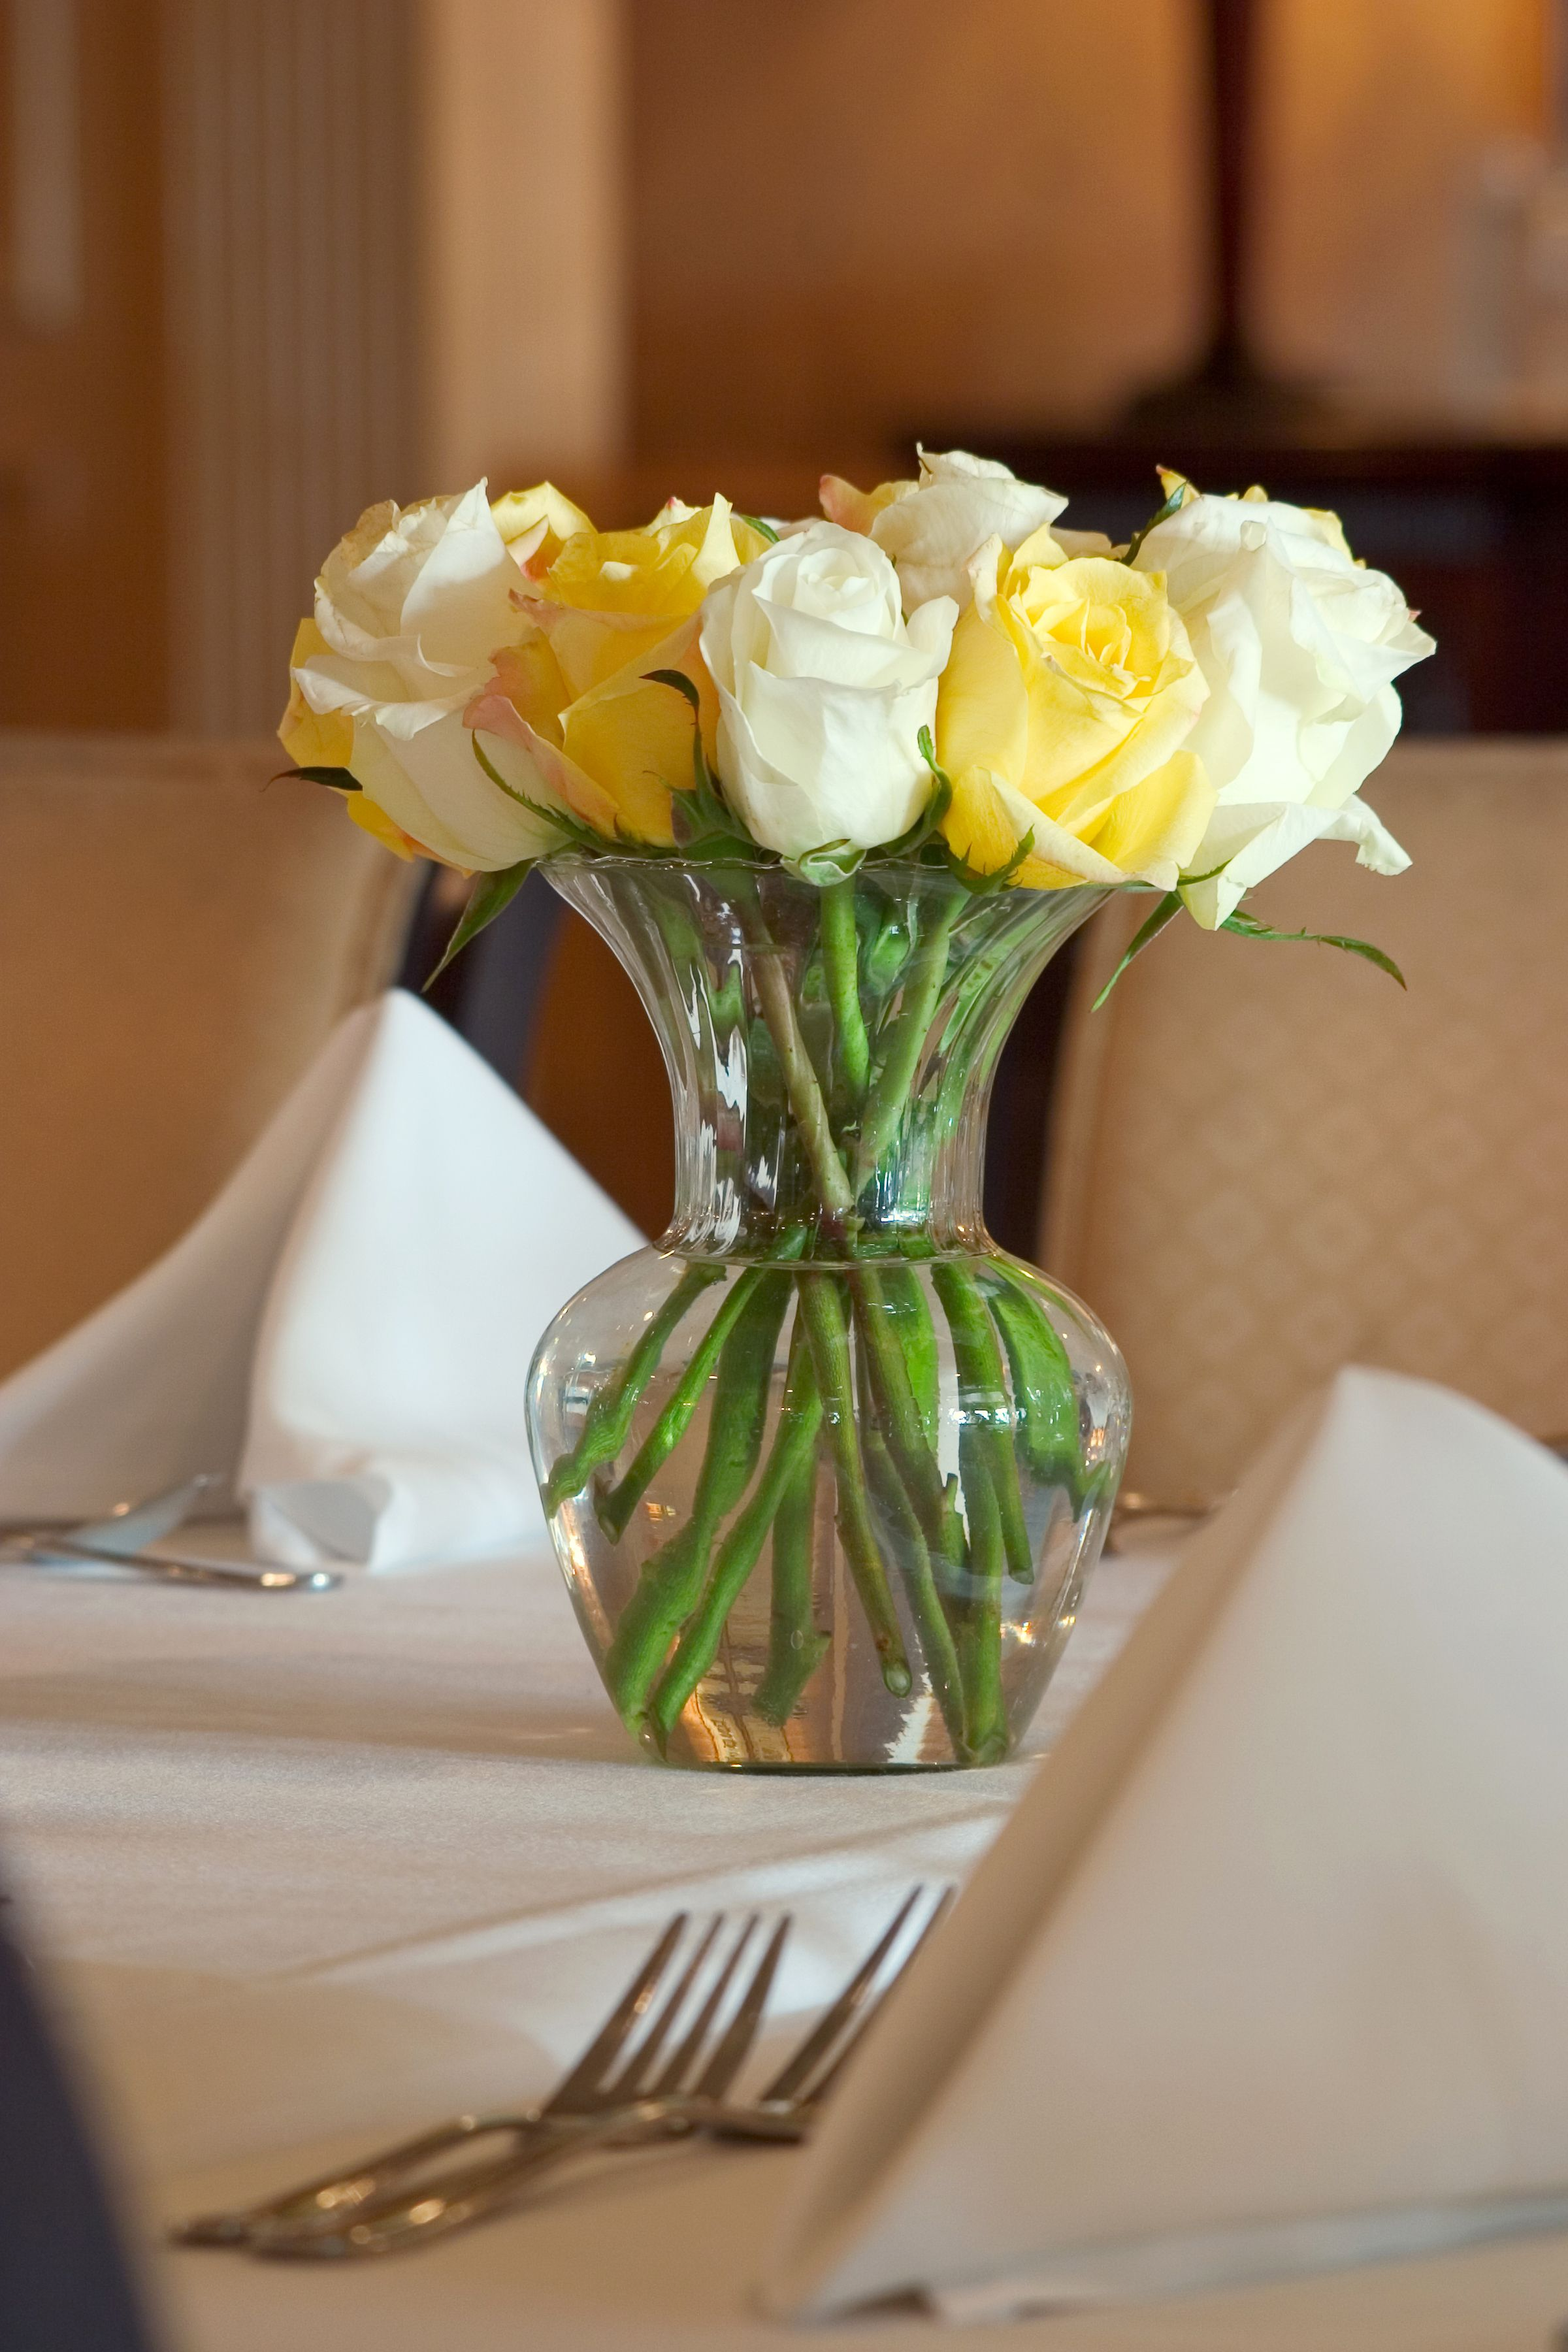 I Dont Like Roses But This Works Yellow And White Rose Table